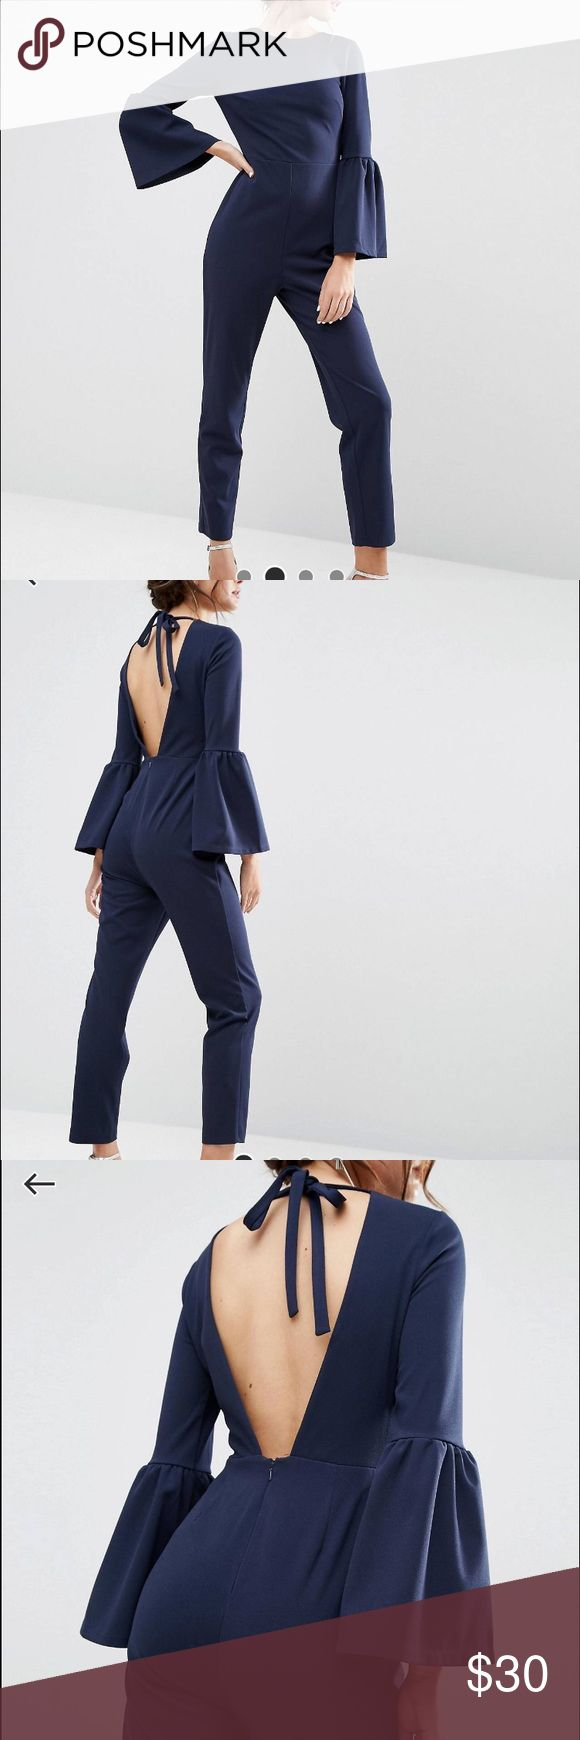 ASOS Jumpsuit w/ bell sleeves Navy blue jumpsuit with bell sleeves & a cut-out back. Worn once. ASOS Pants Jumpsuits & Rompers